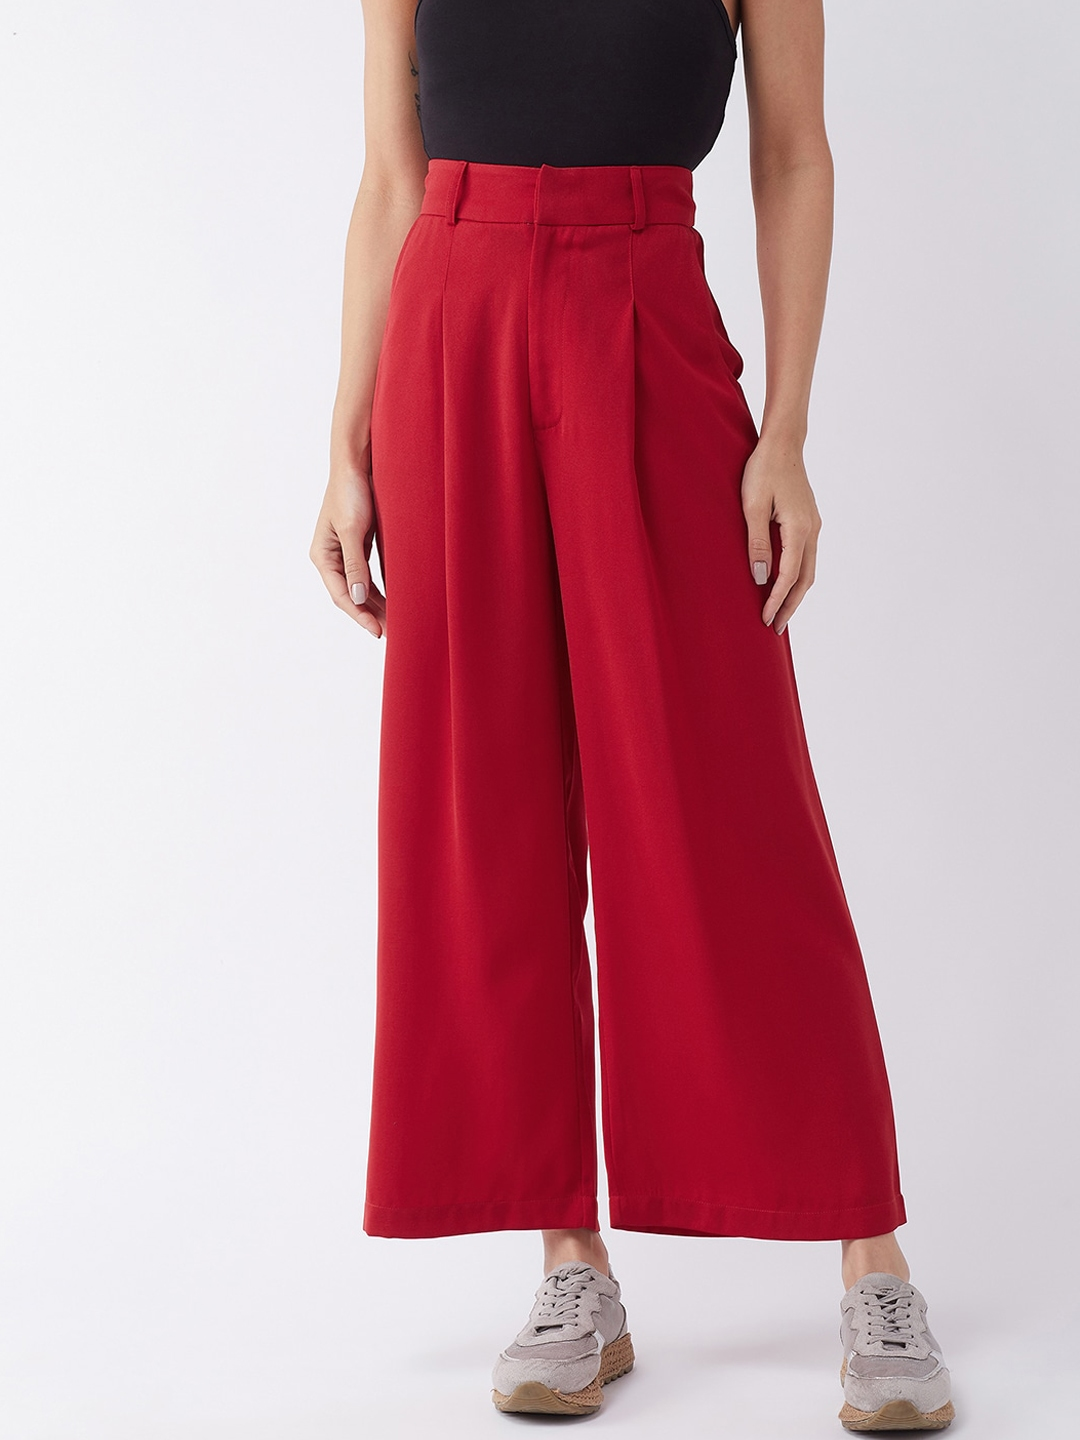 MAGRE Women Red Flared Solid Parallel Trousers